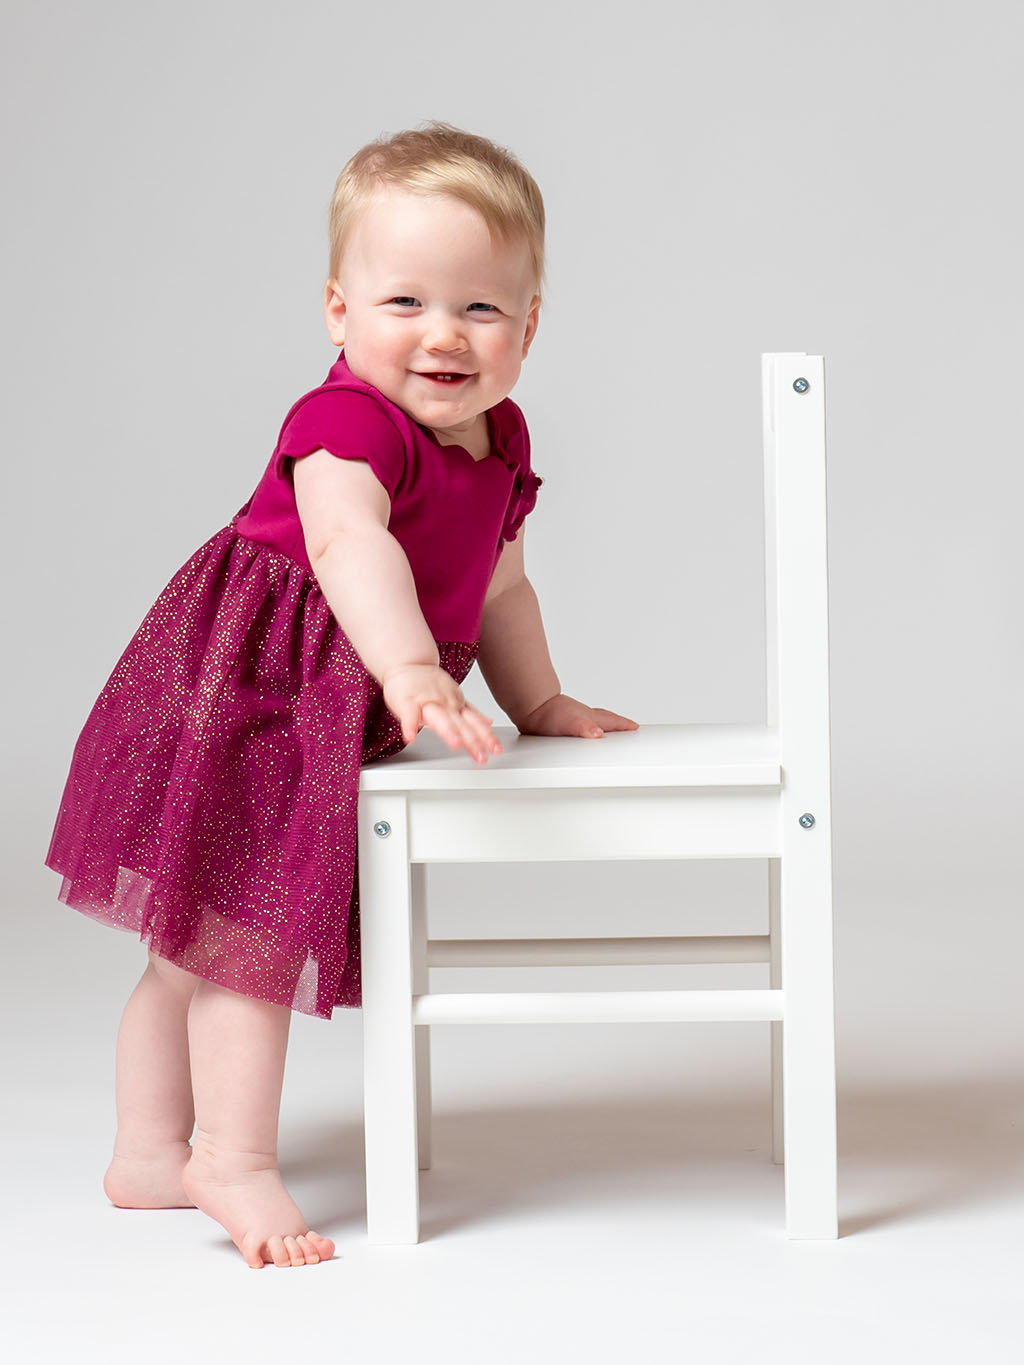 little baby toddler just standing holding on to white chair for support while smiling taken by qualified baby photographer in Braintree, Essex